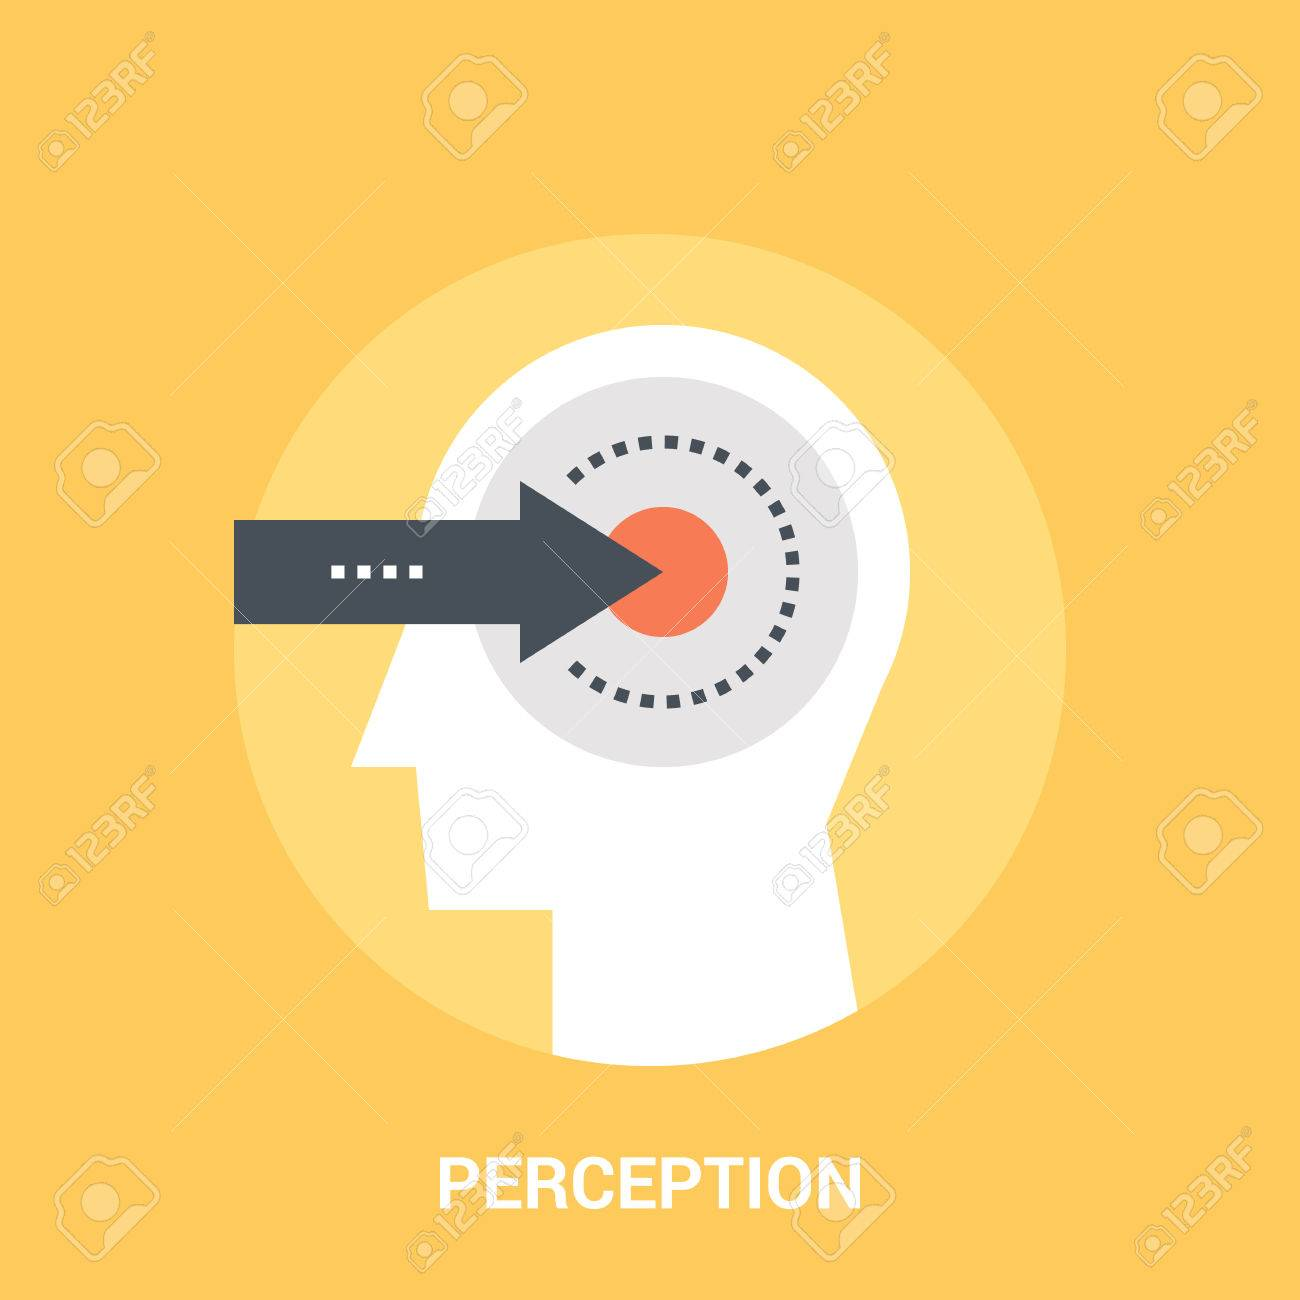 Abstract vector illustration of perception icon concept - 70983242